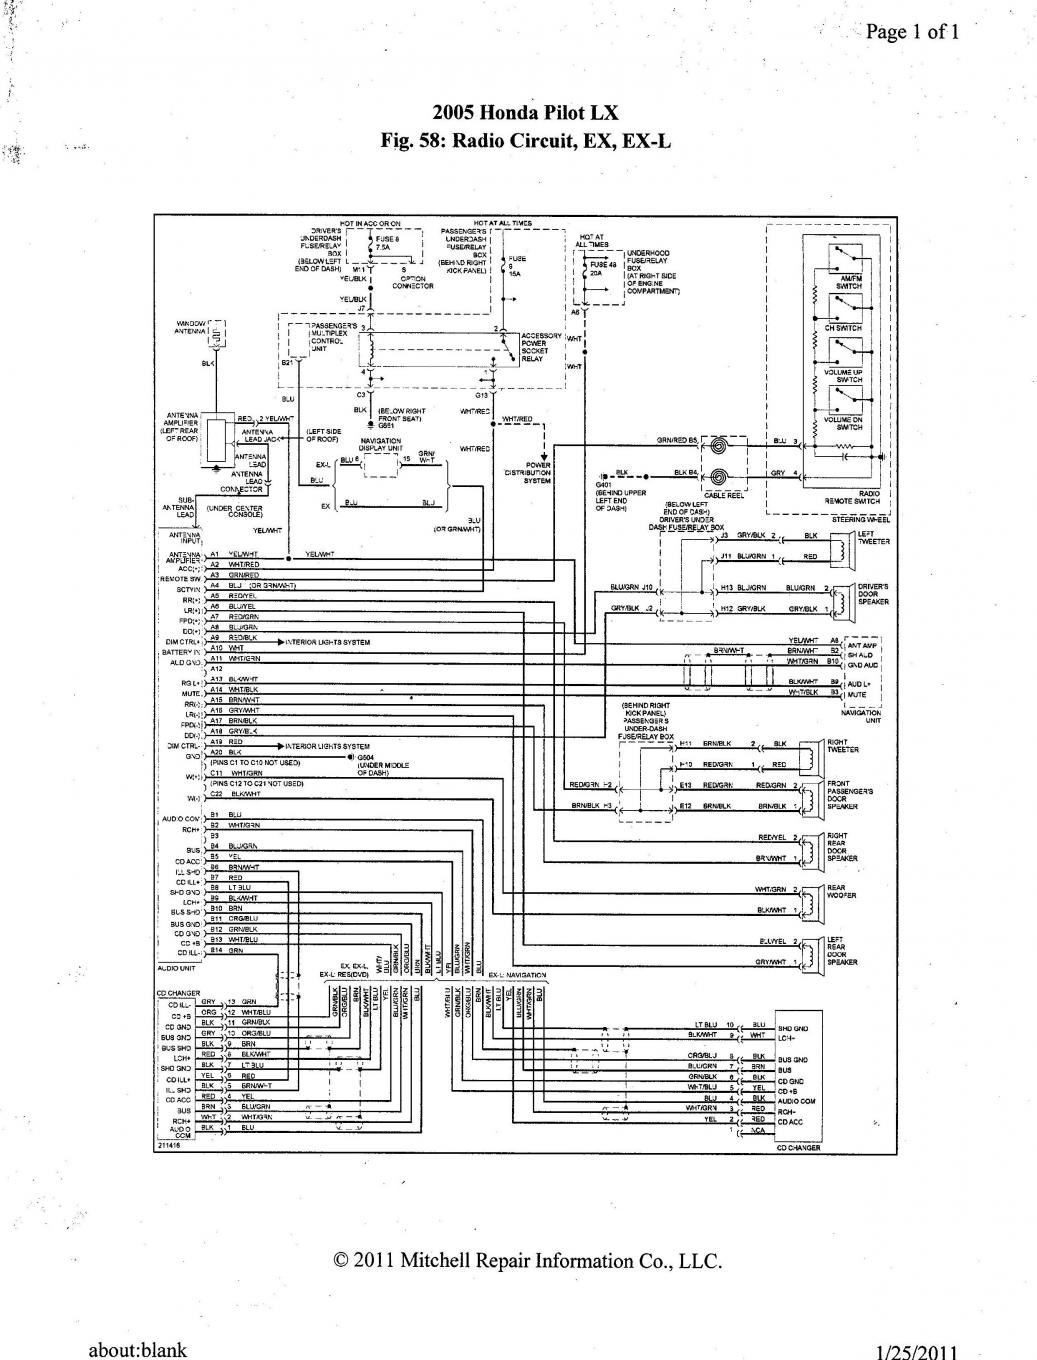 audio wire diagram for honda pilot 2003